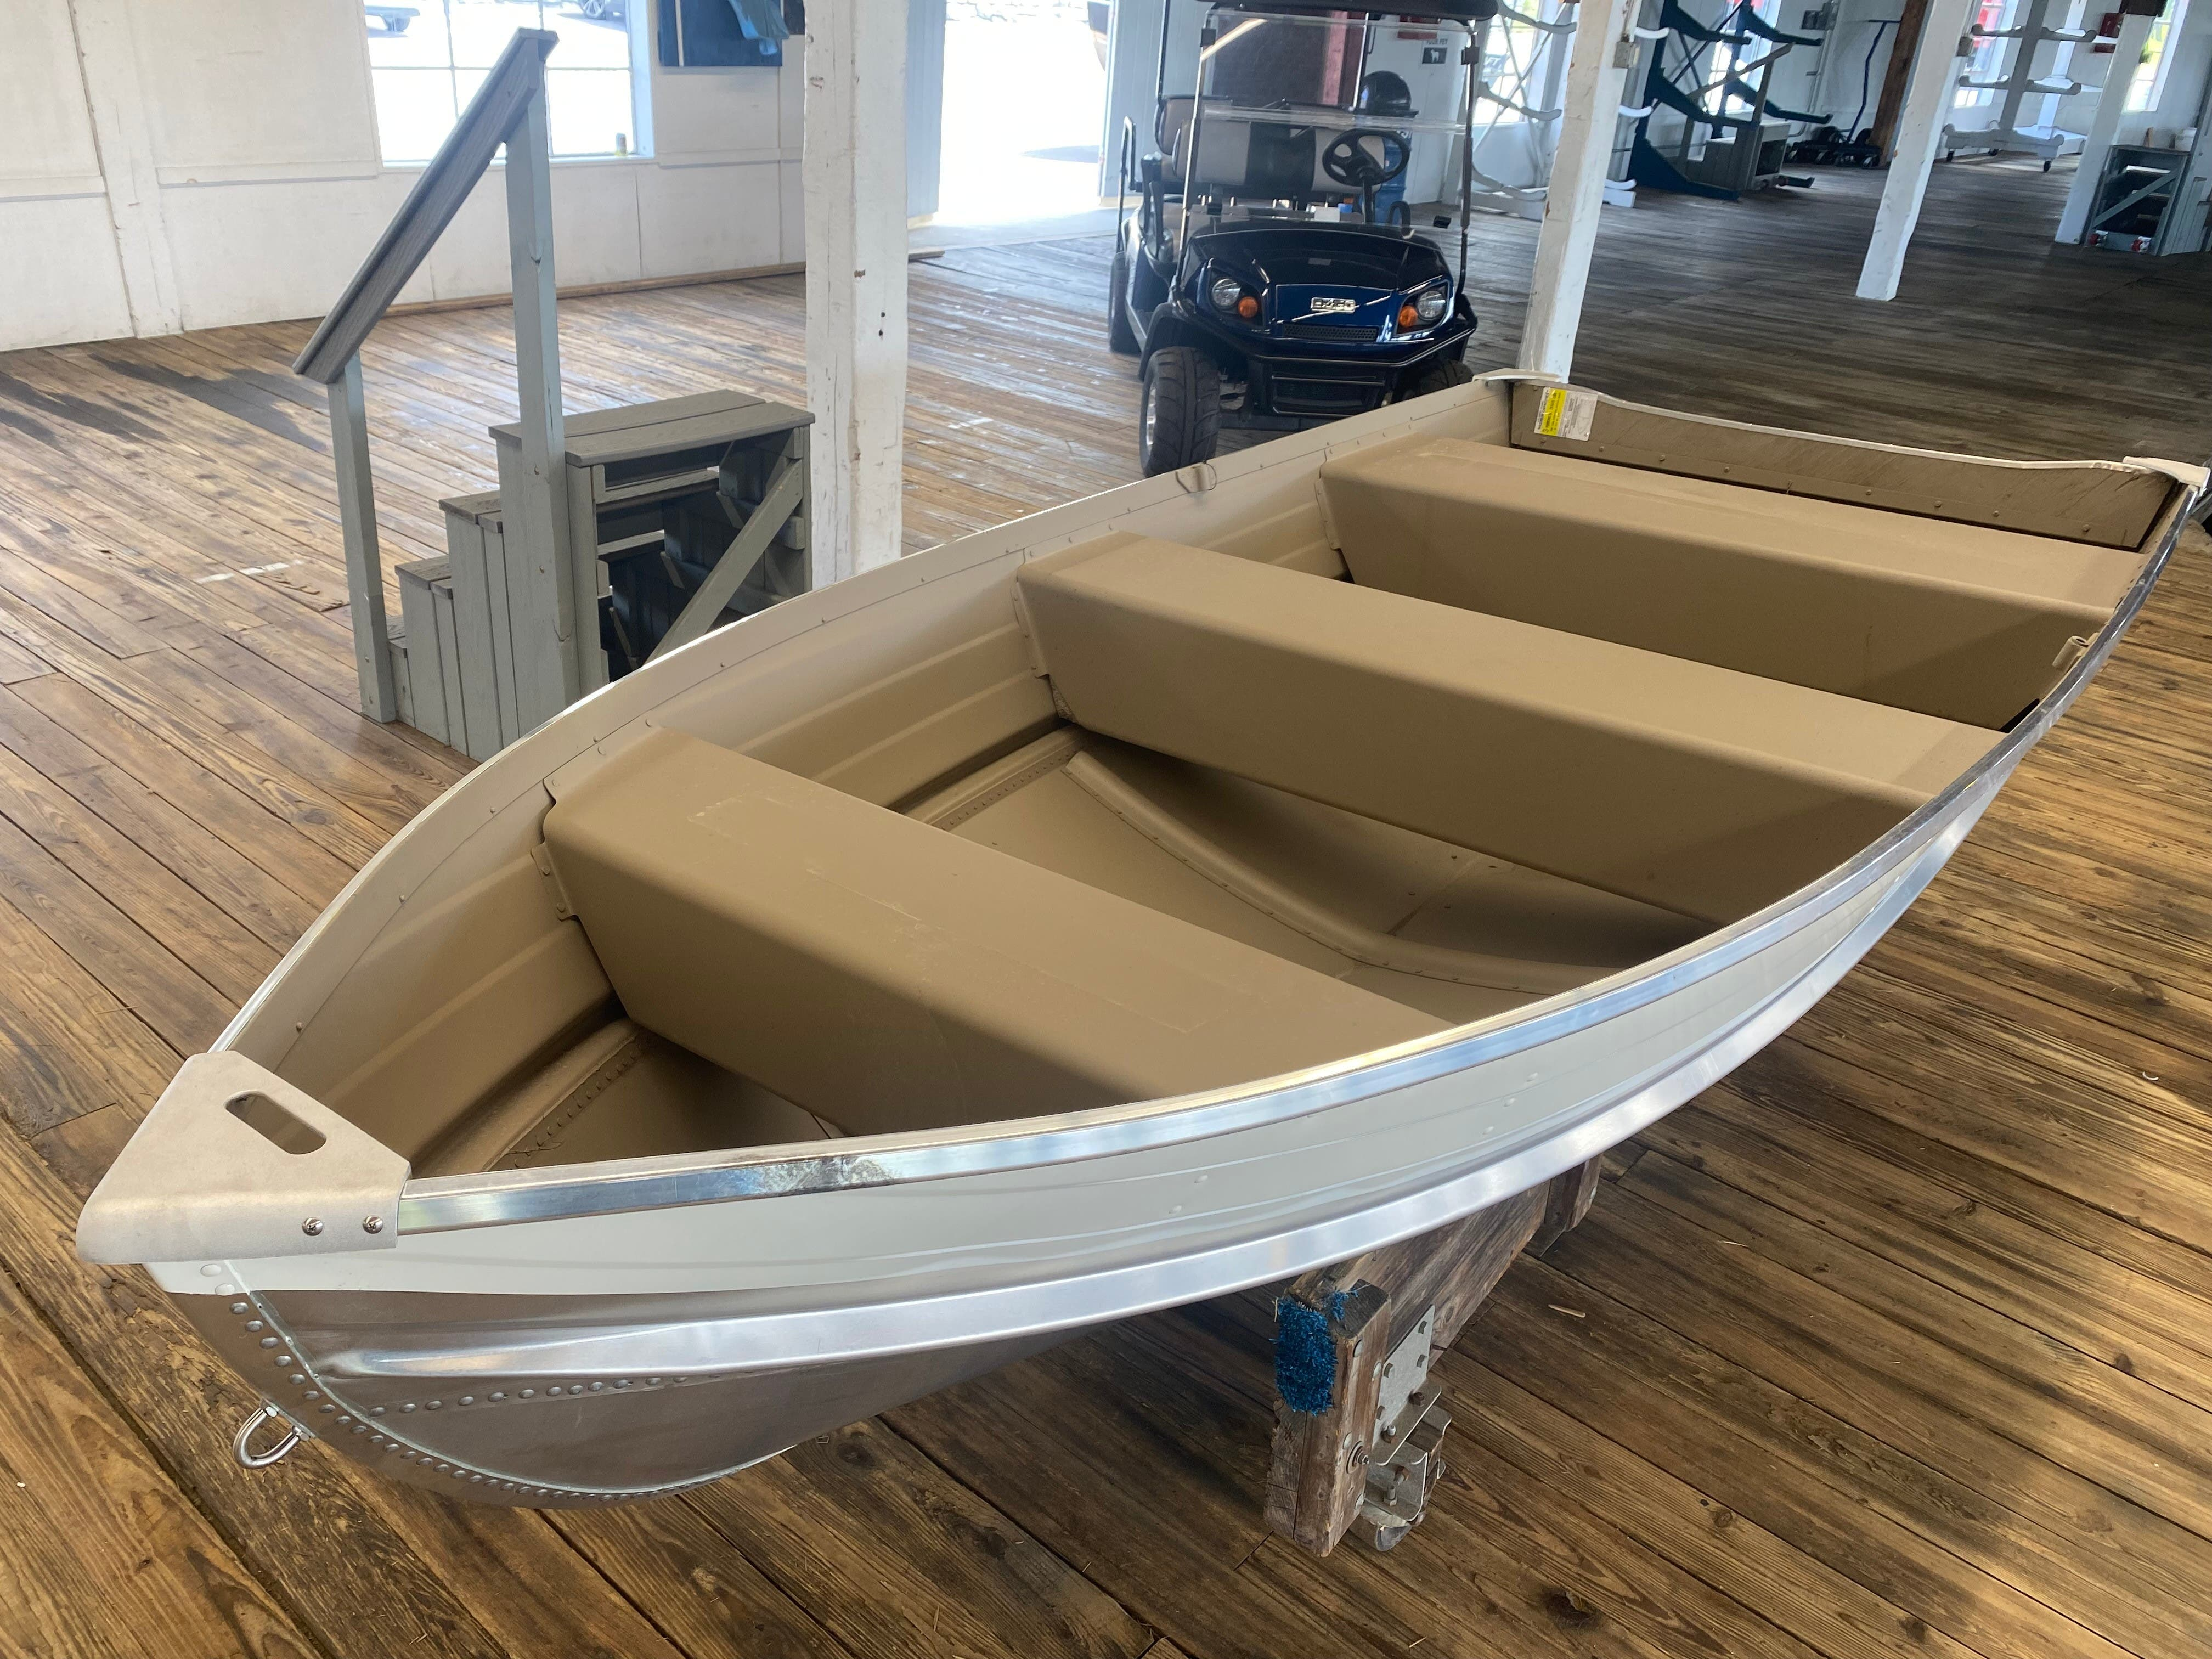 2022 Starcraft boat for sale, model of the boat is 12 SEALITE TS & Image # 6 of 6